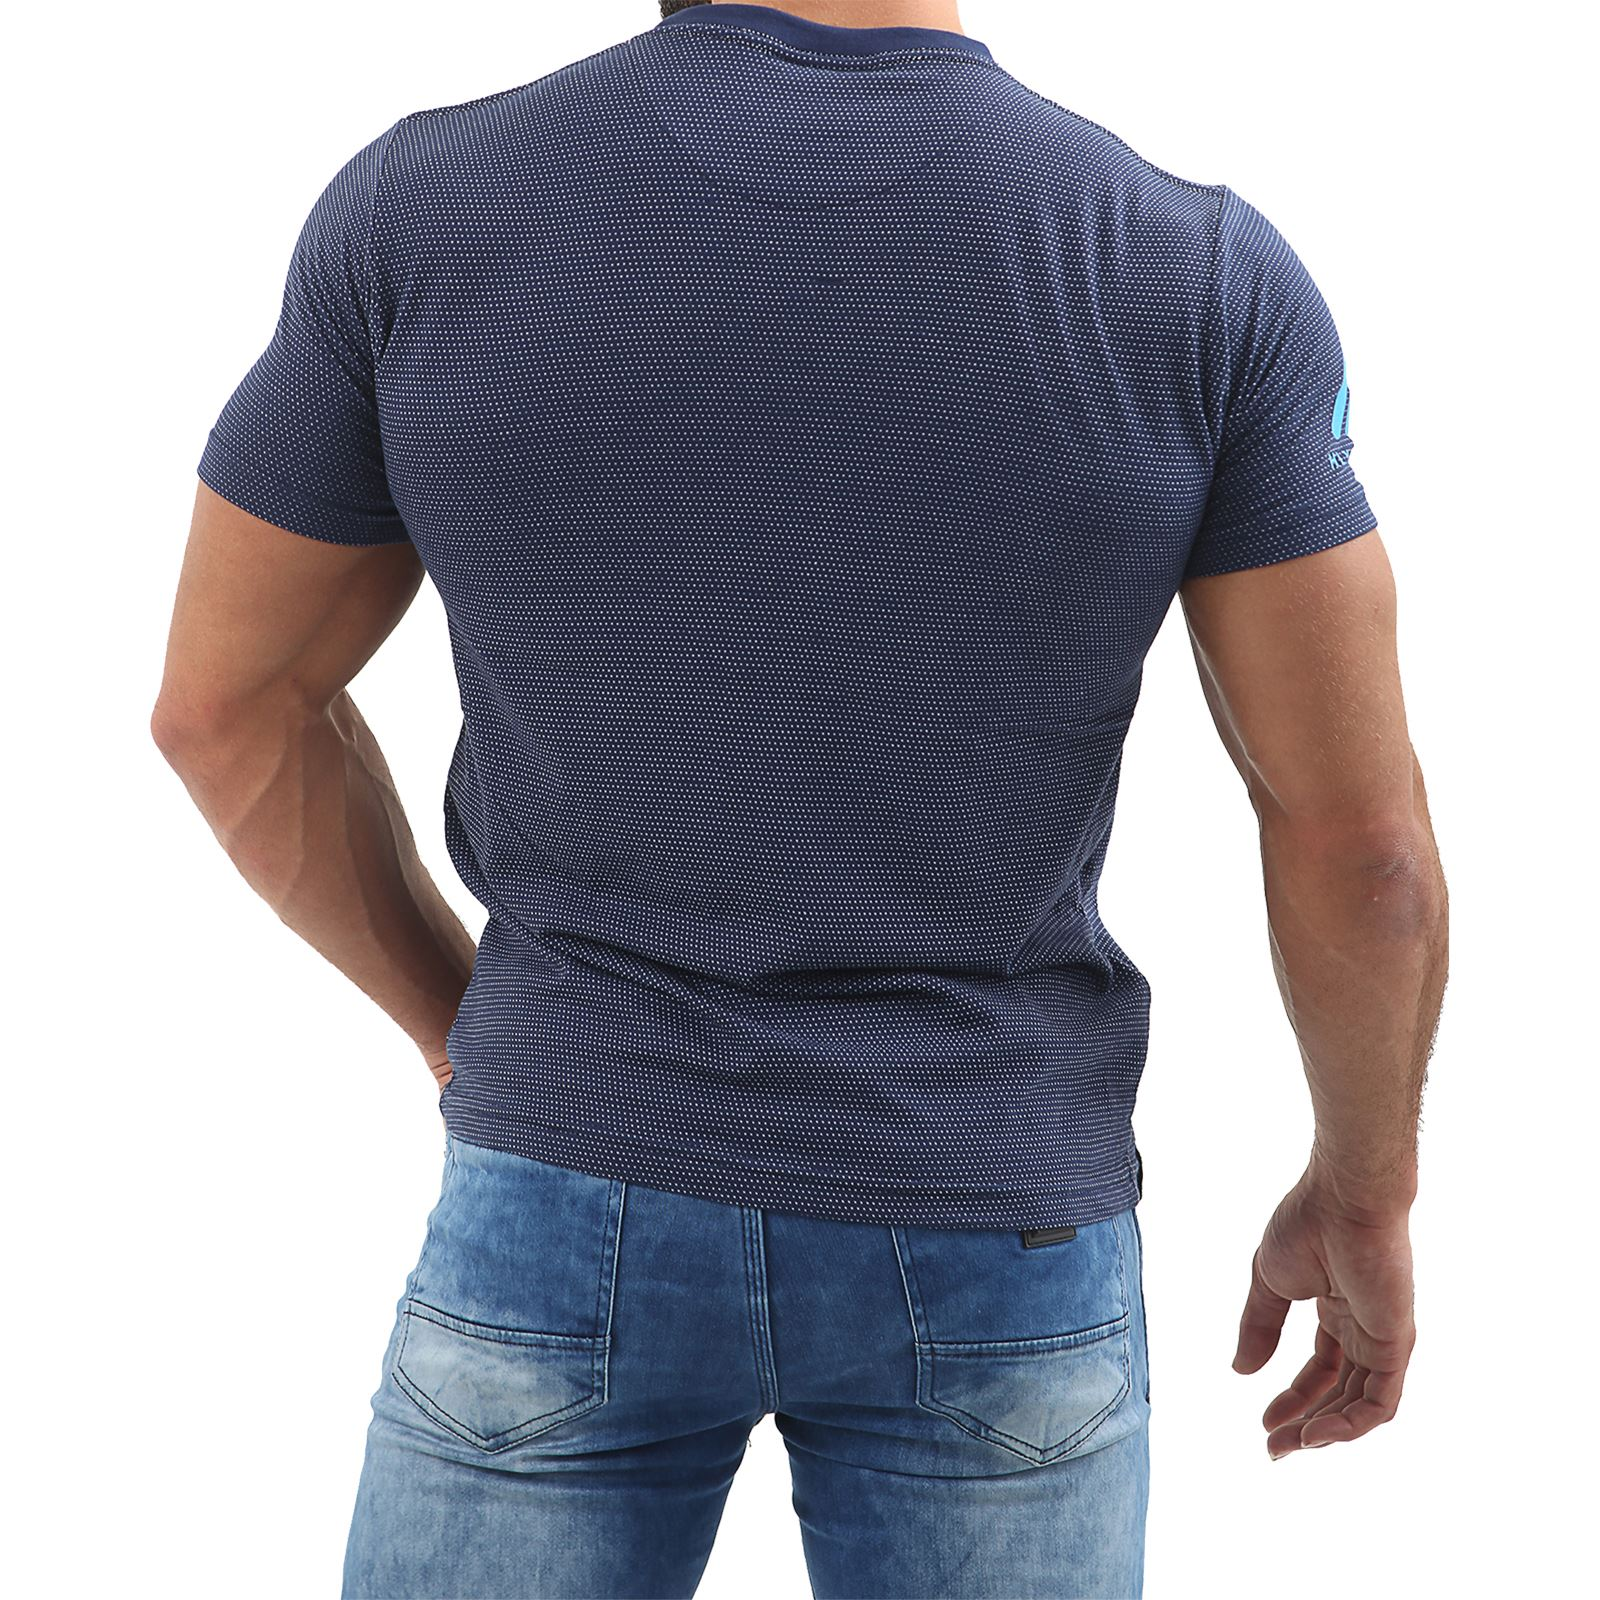 Mens-HLY-EQPT-Printed-T-Shirt-100-Cotton-Gym-Athletic-Training-Tee-Top-Summer thumbnail 38